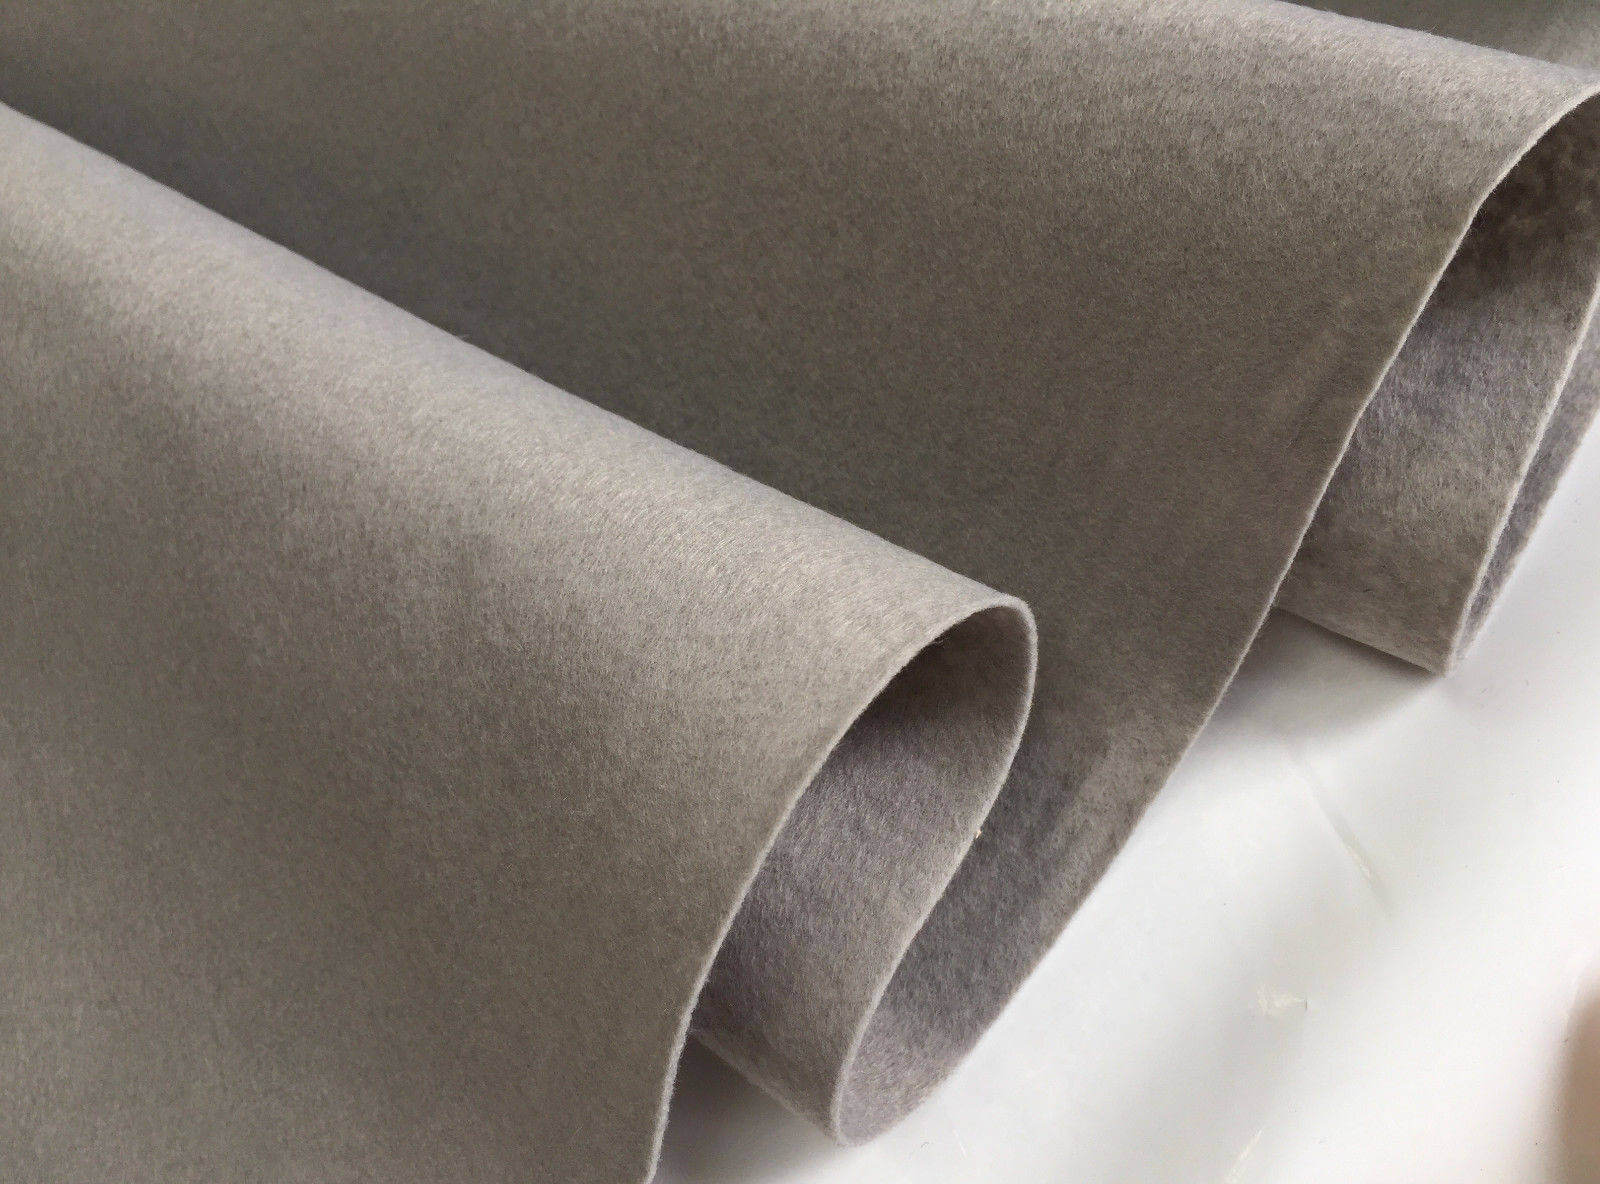 felt-fabric-material-craft-plain-colours-polyester-102cm-wide-silver-grey-5ace63eb1.jpg